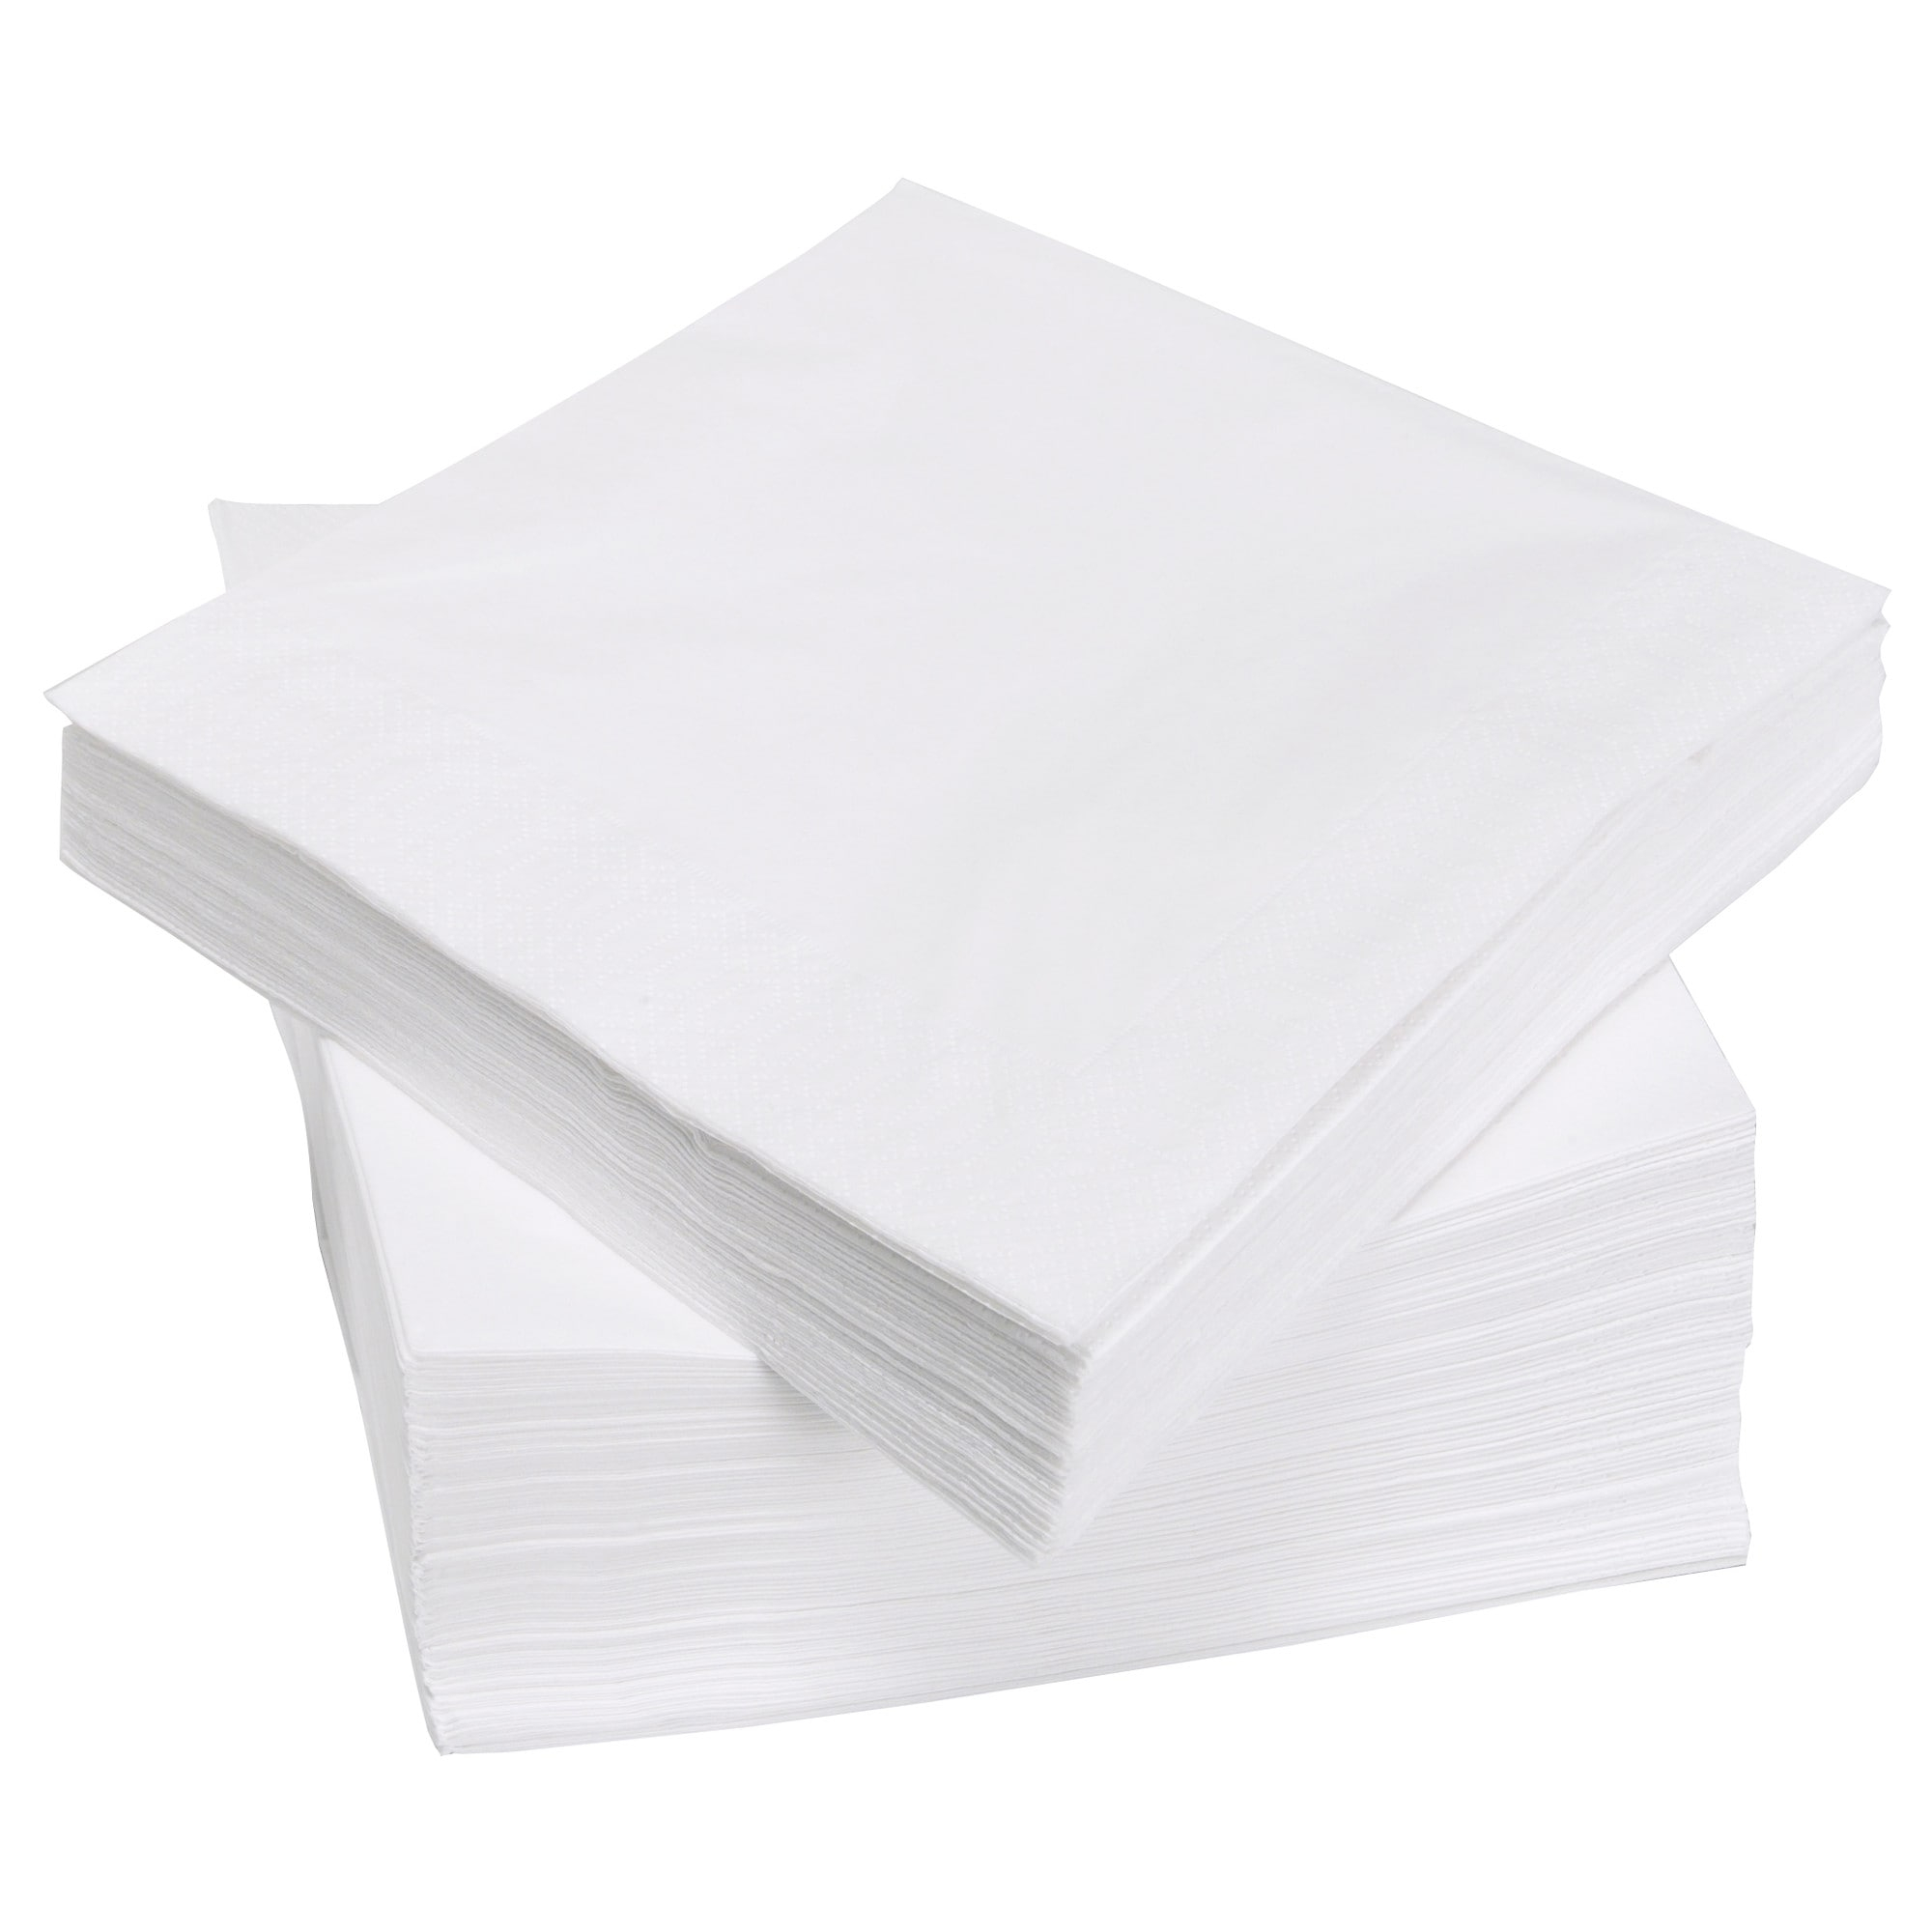 2 Ply White Napkins x 2000